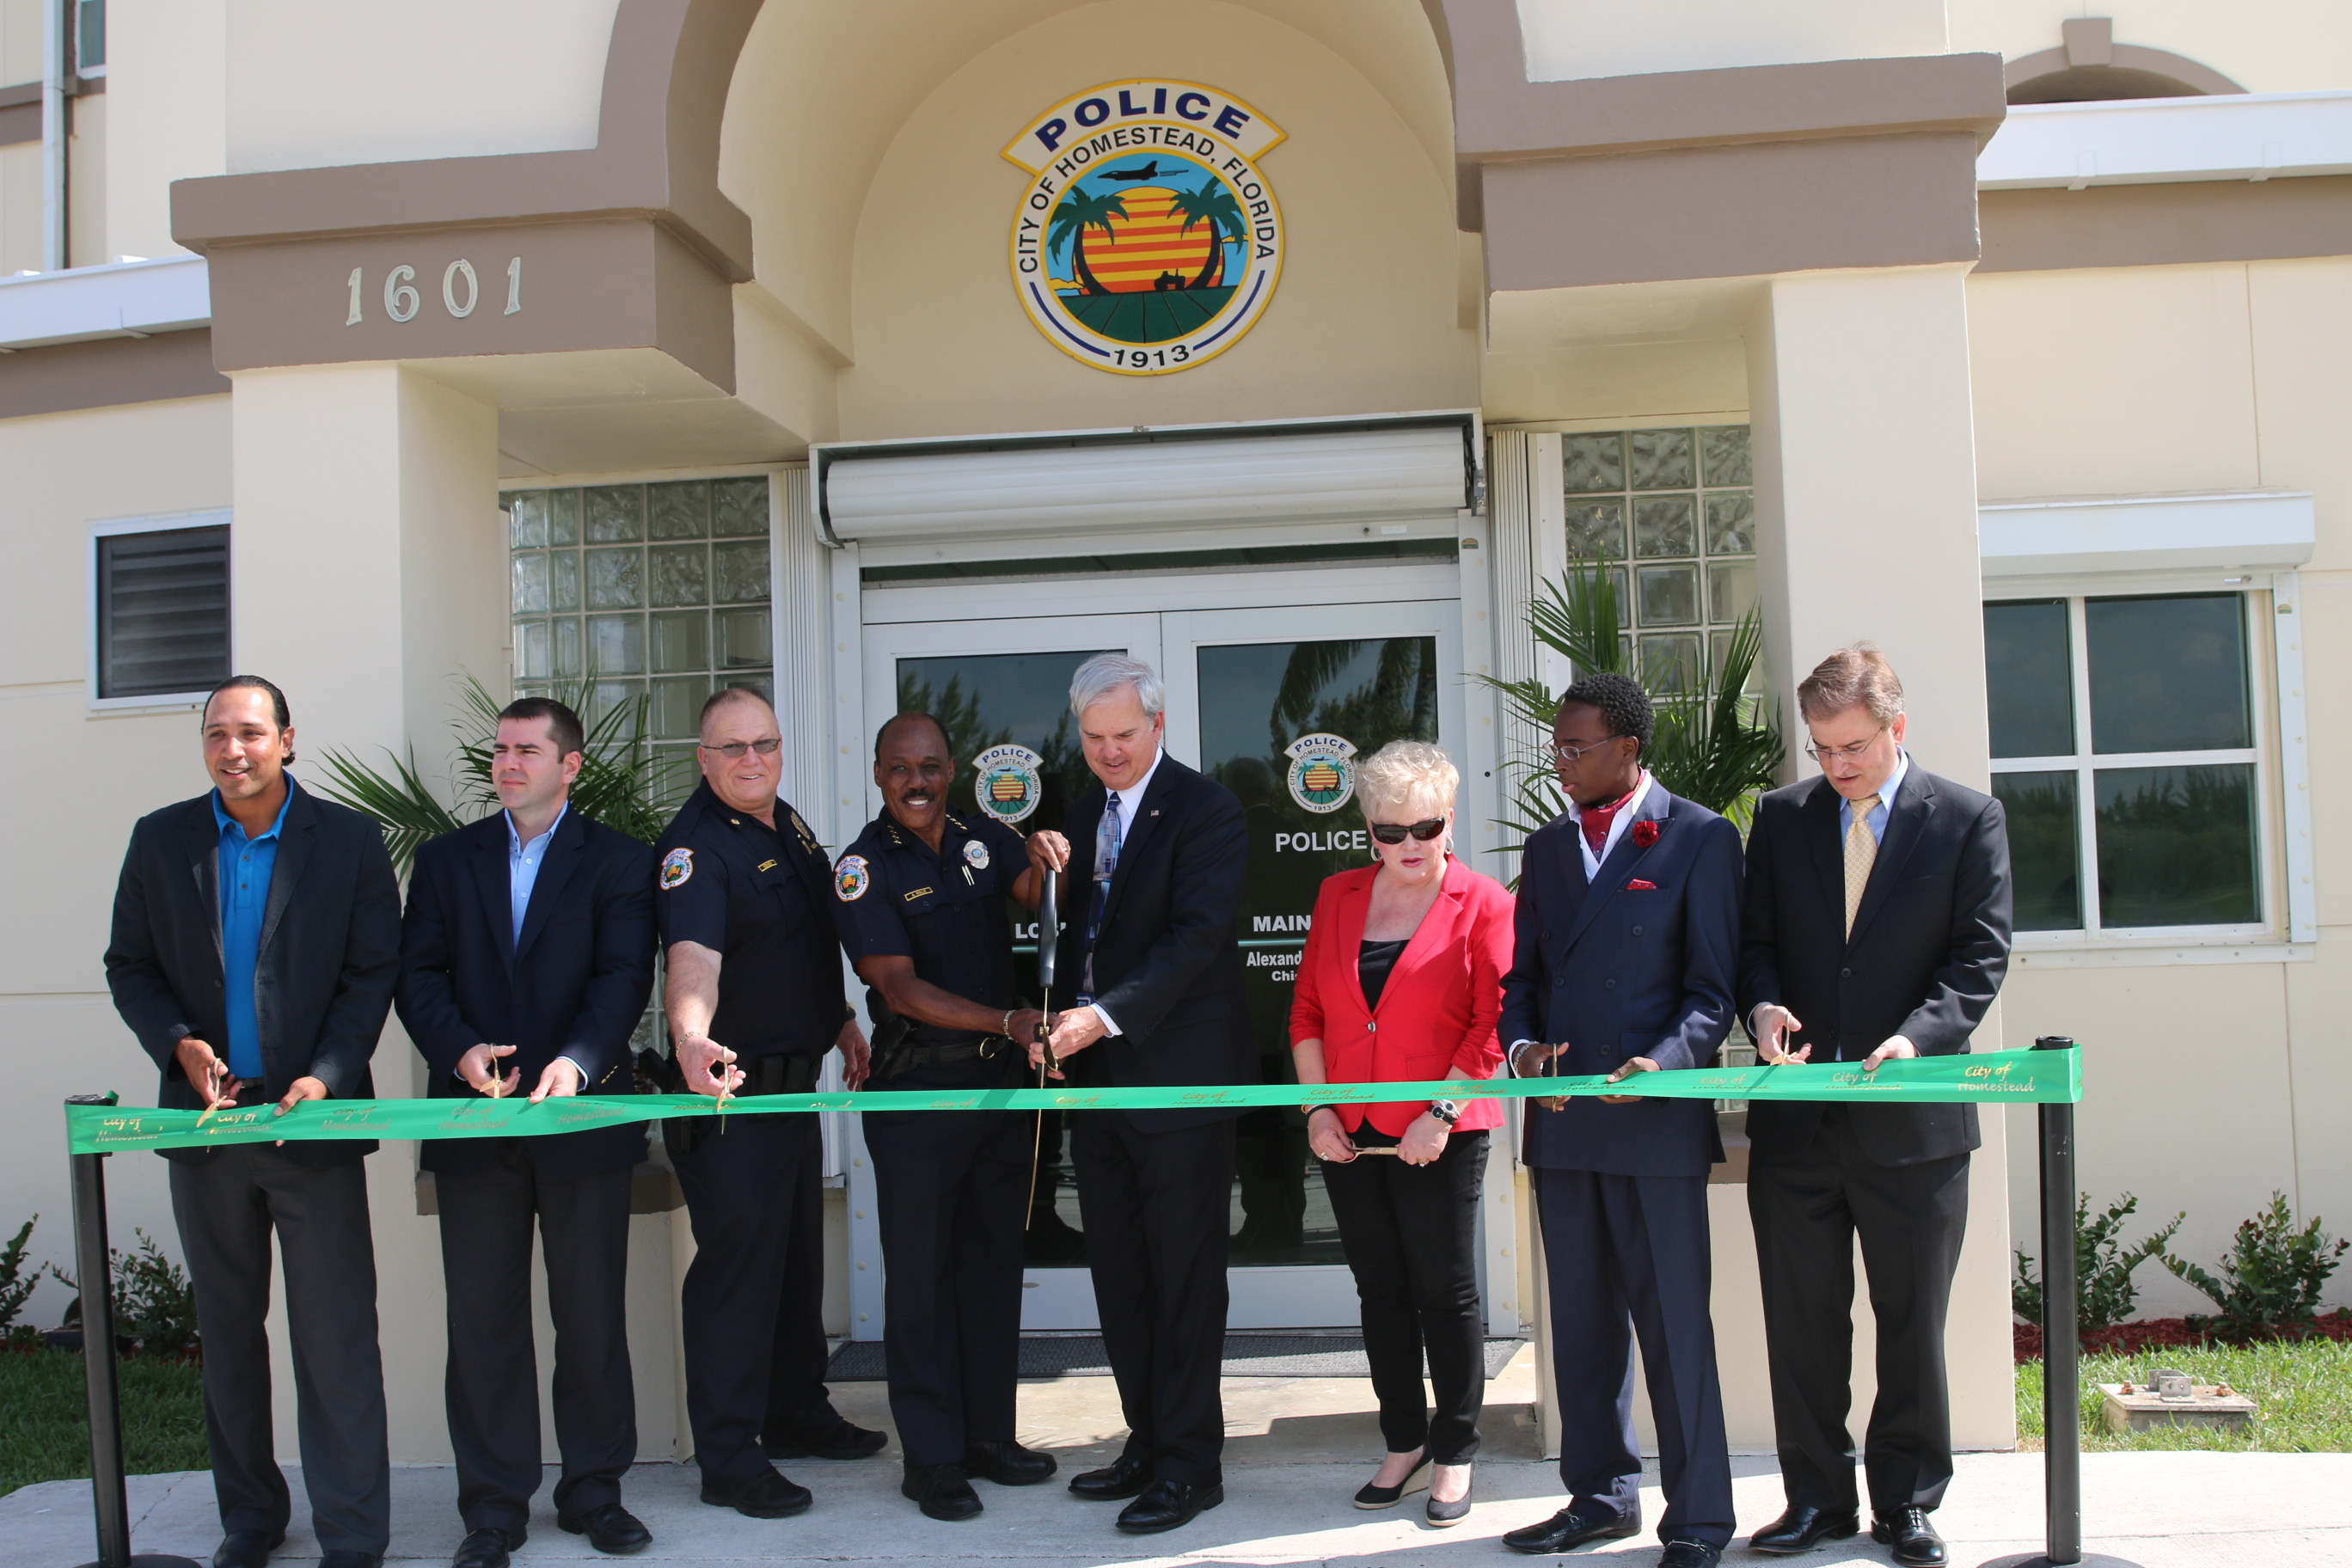 Temporary Police Station Ribbon Cutting